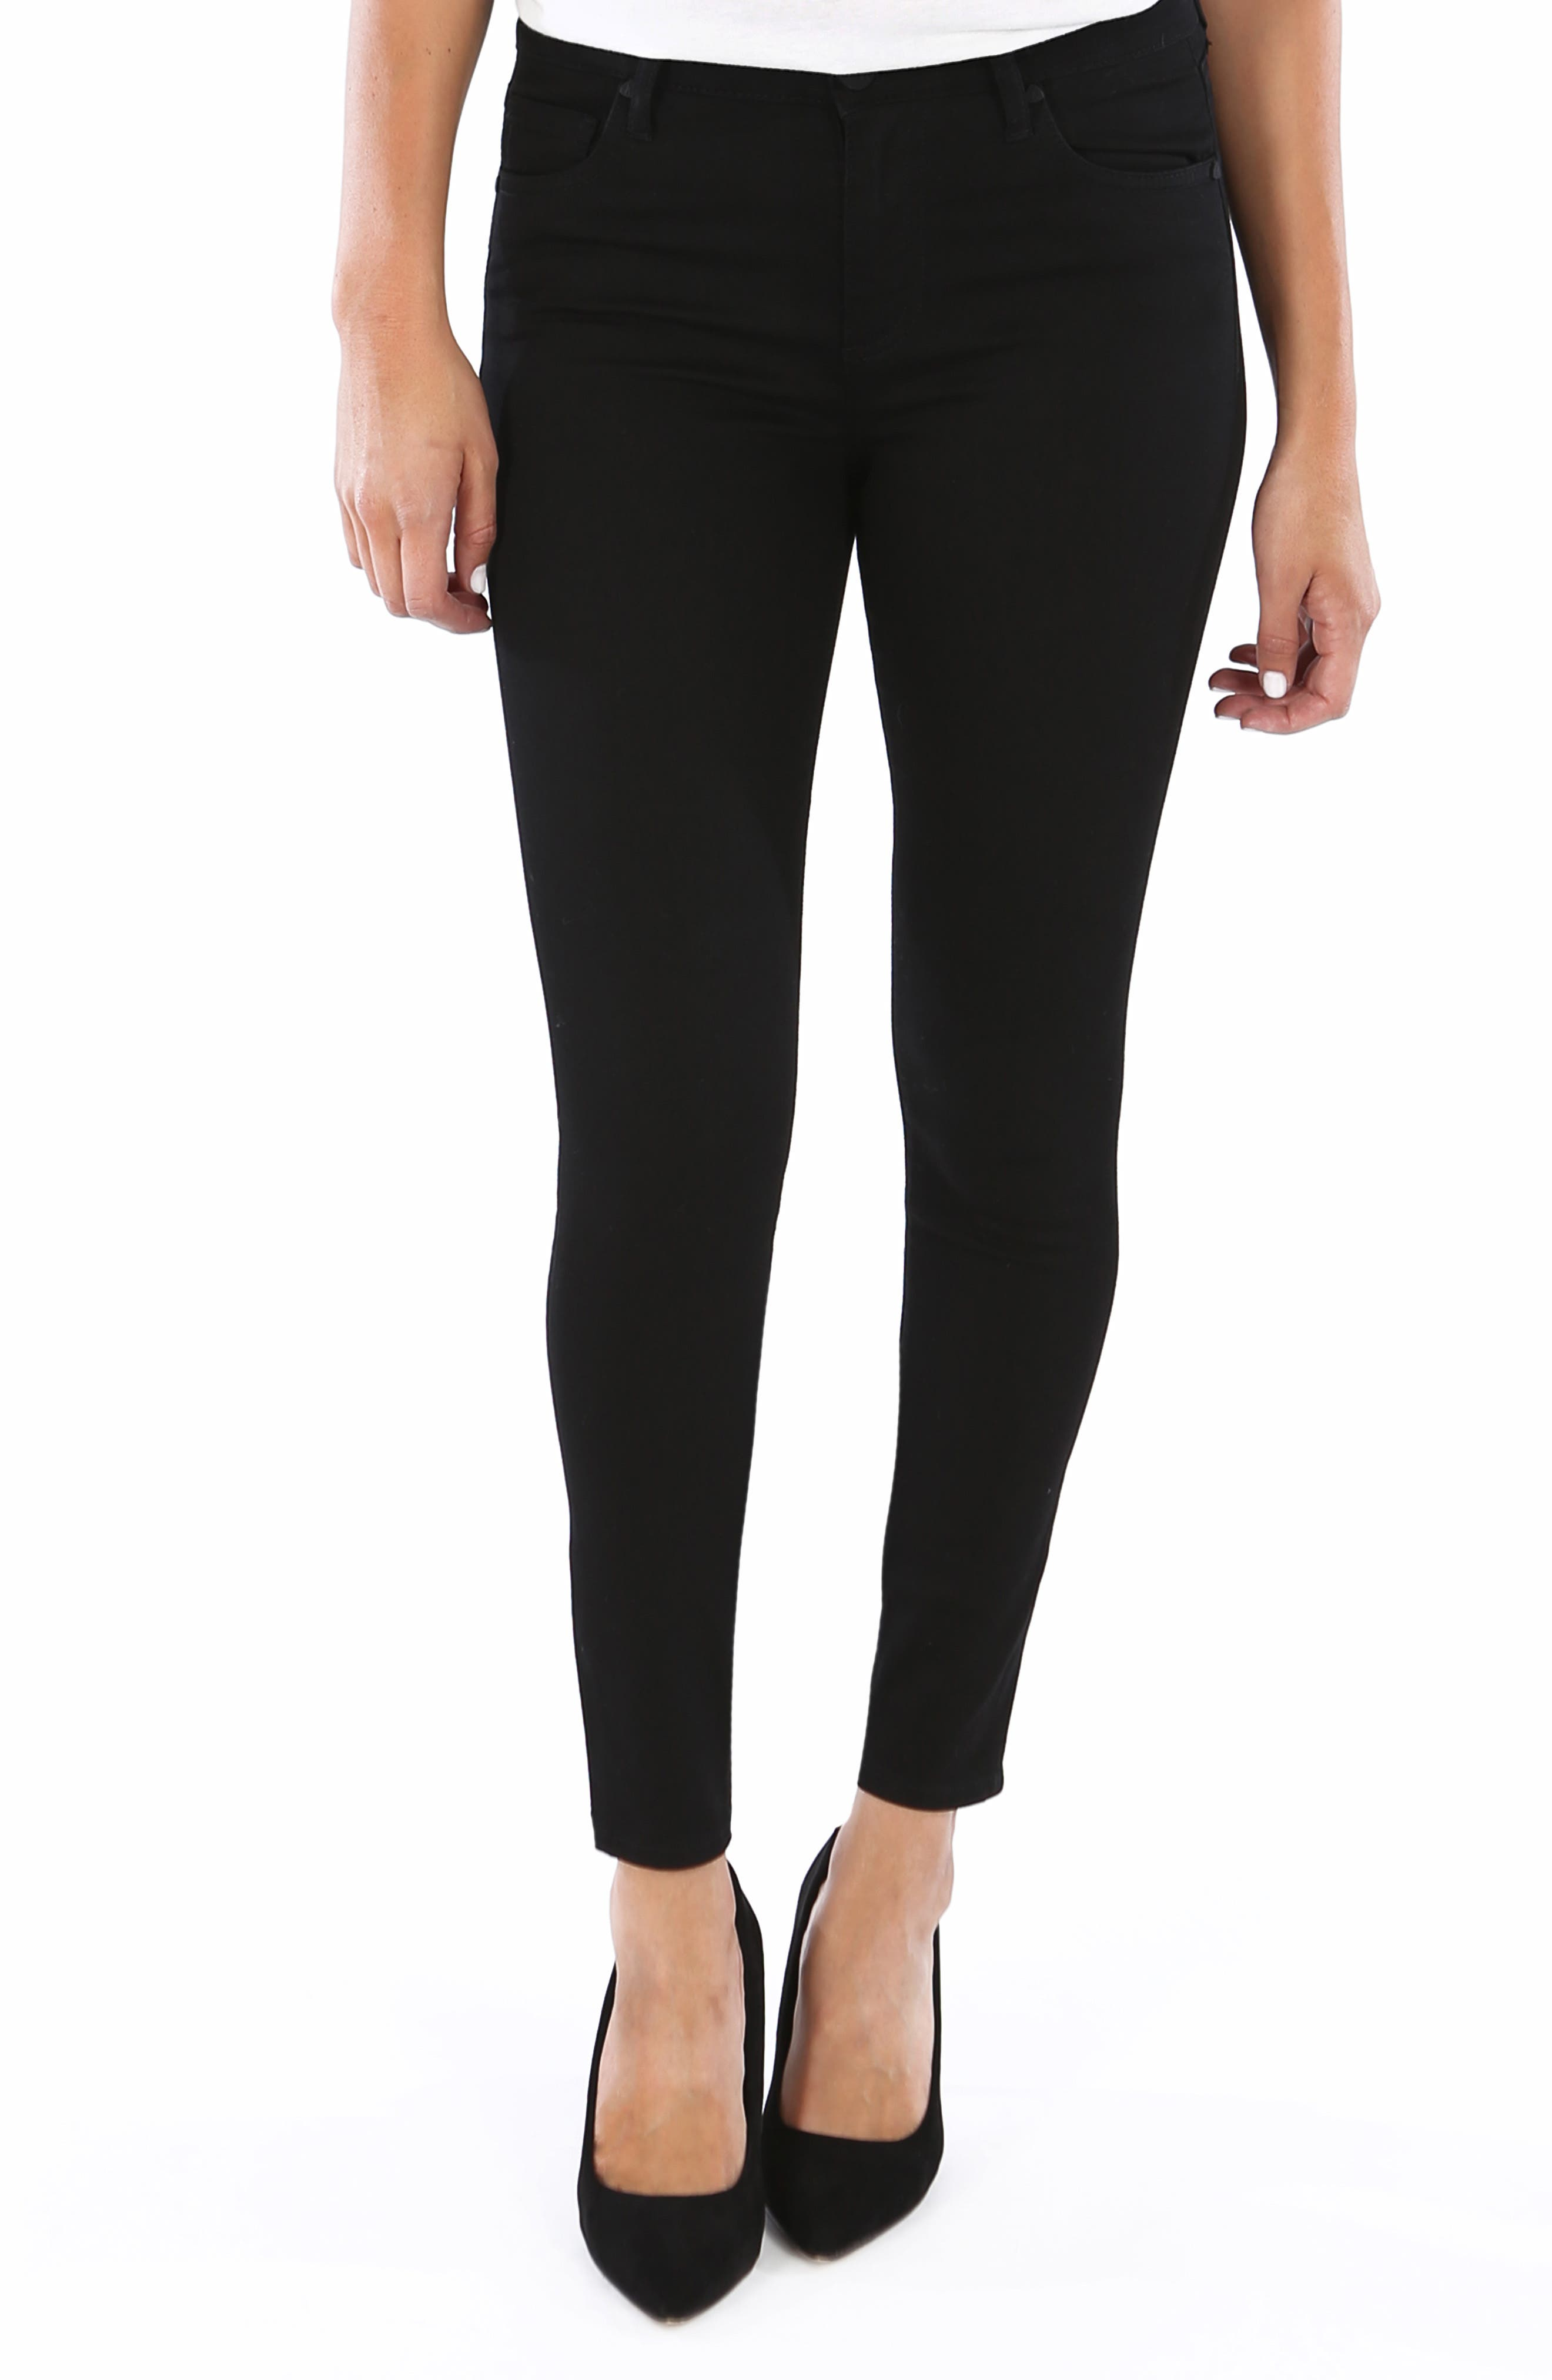 KUT FROM THE KLOTH, Donna High Waist Ankle Skinny Jeans, Main thumbnail 1, color, 002